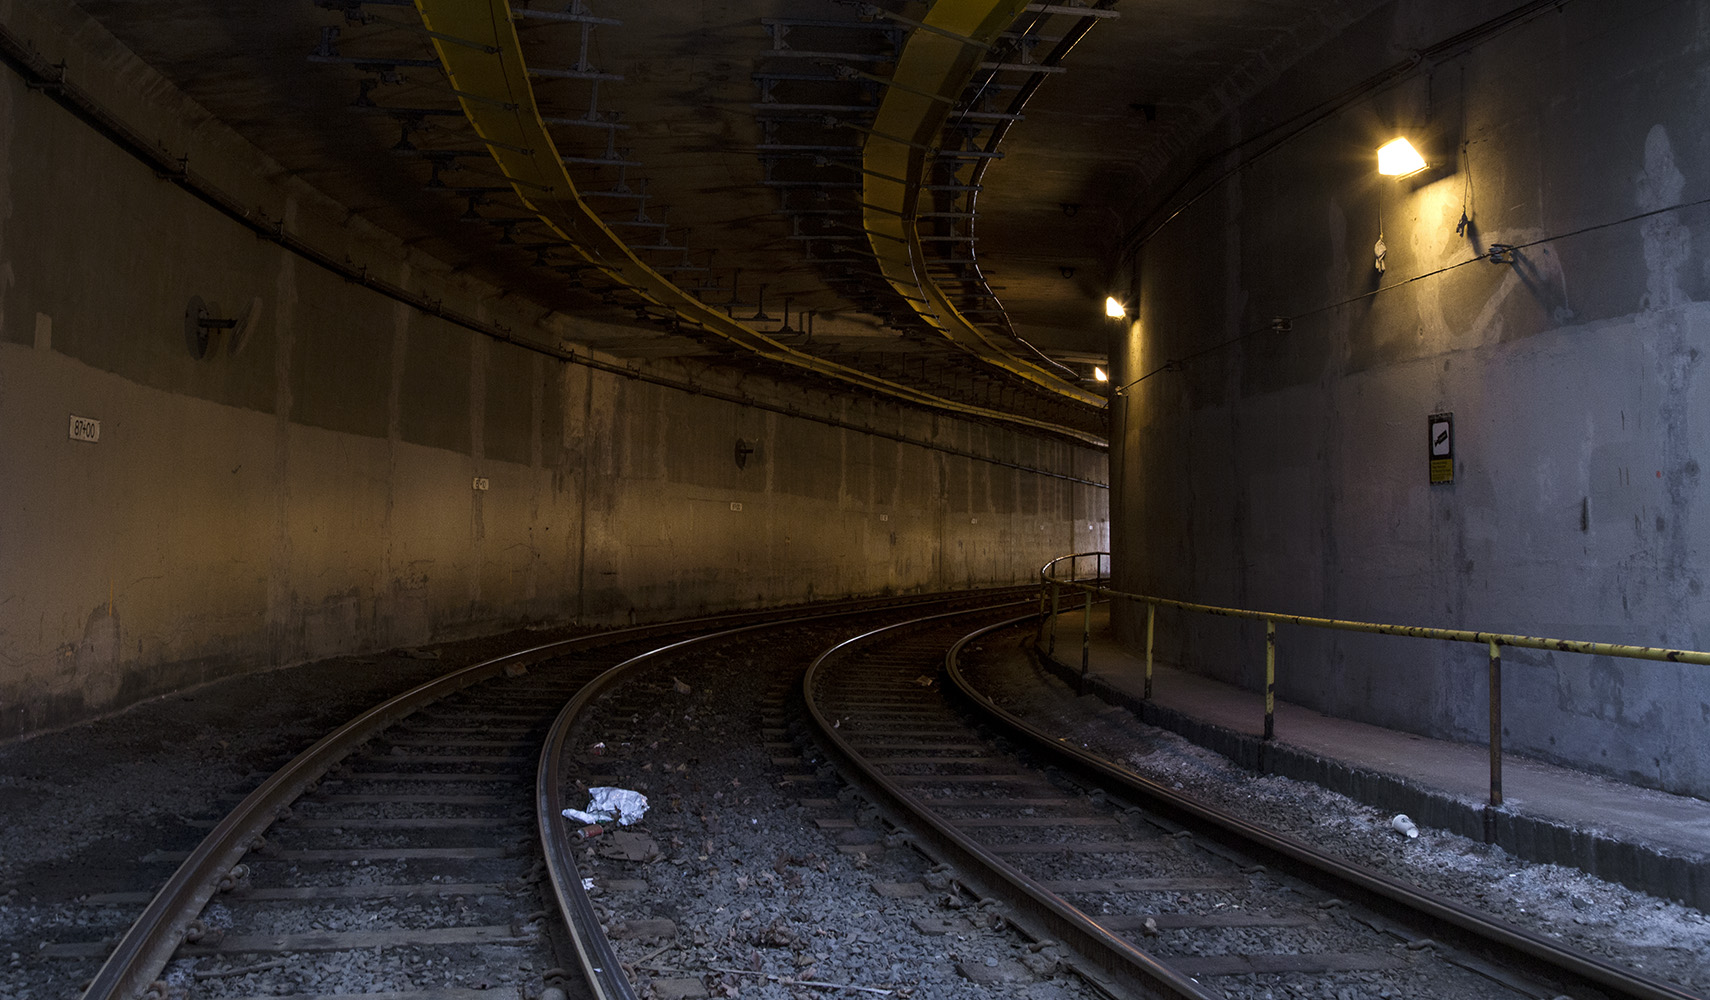 20170114. Daylight penetrates both ends of TTC's curved yellow-l